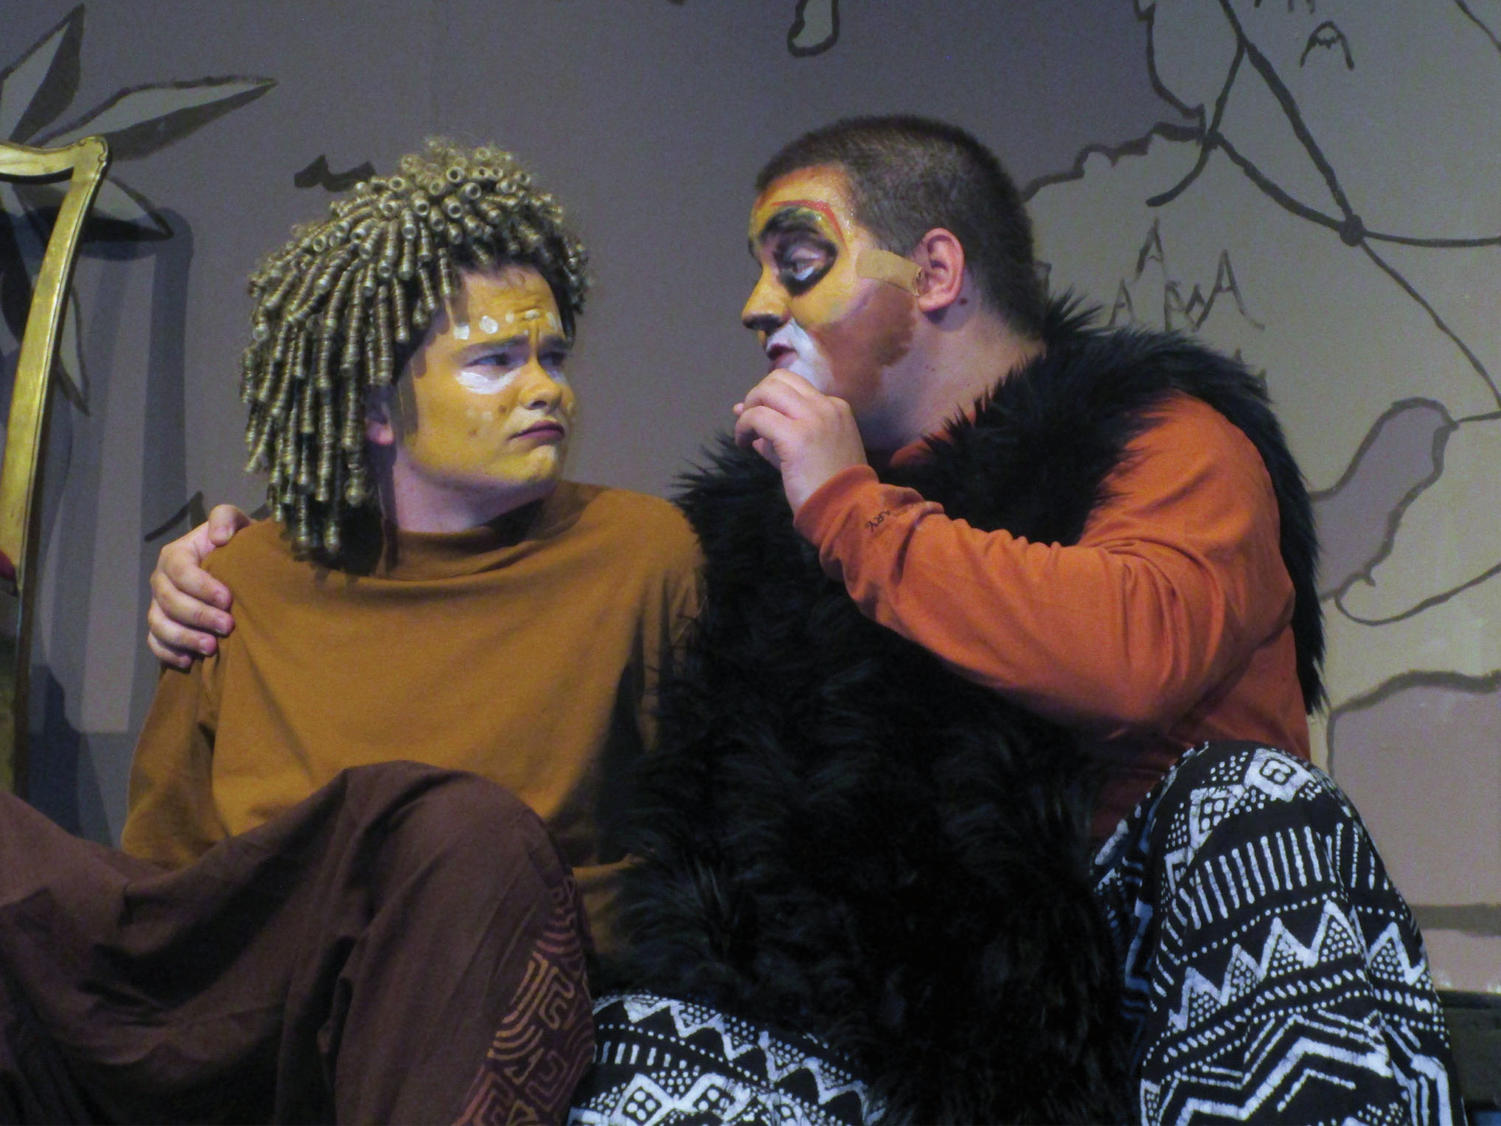 Brendan Loftus and Brian Marino perform a scene from the show. (Shearrill/LION)